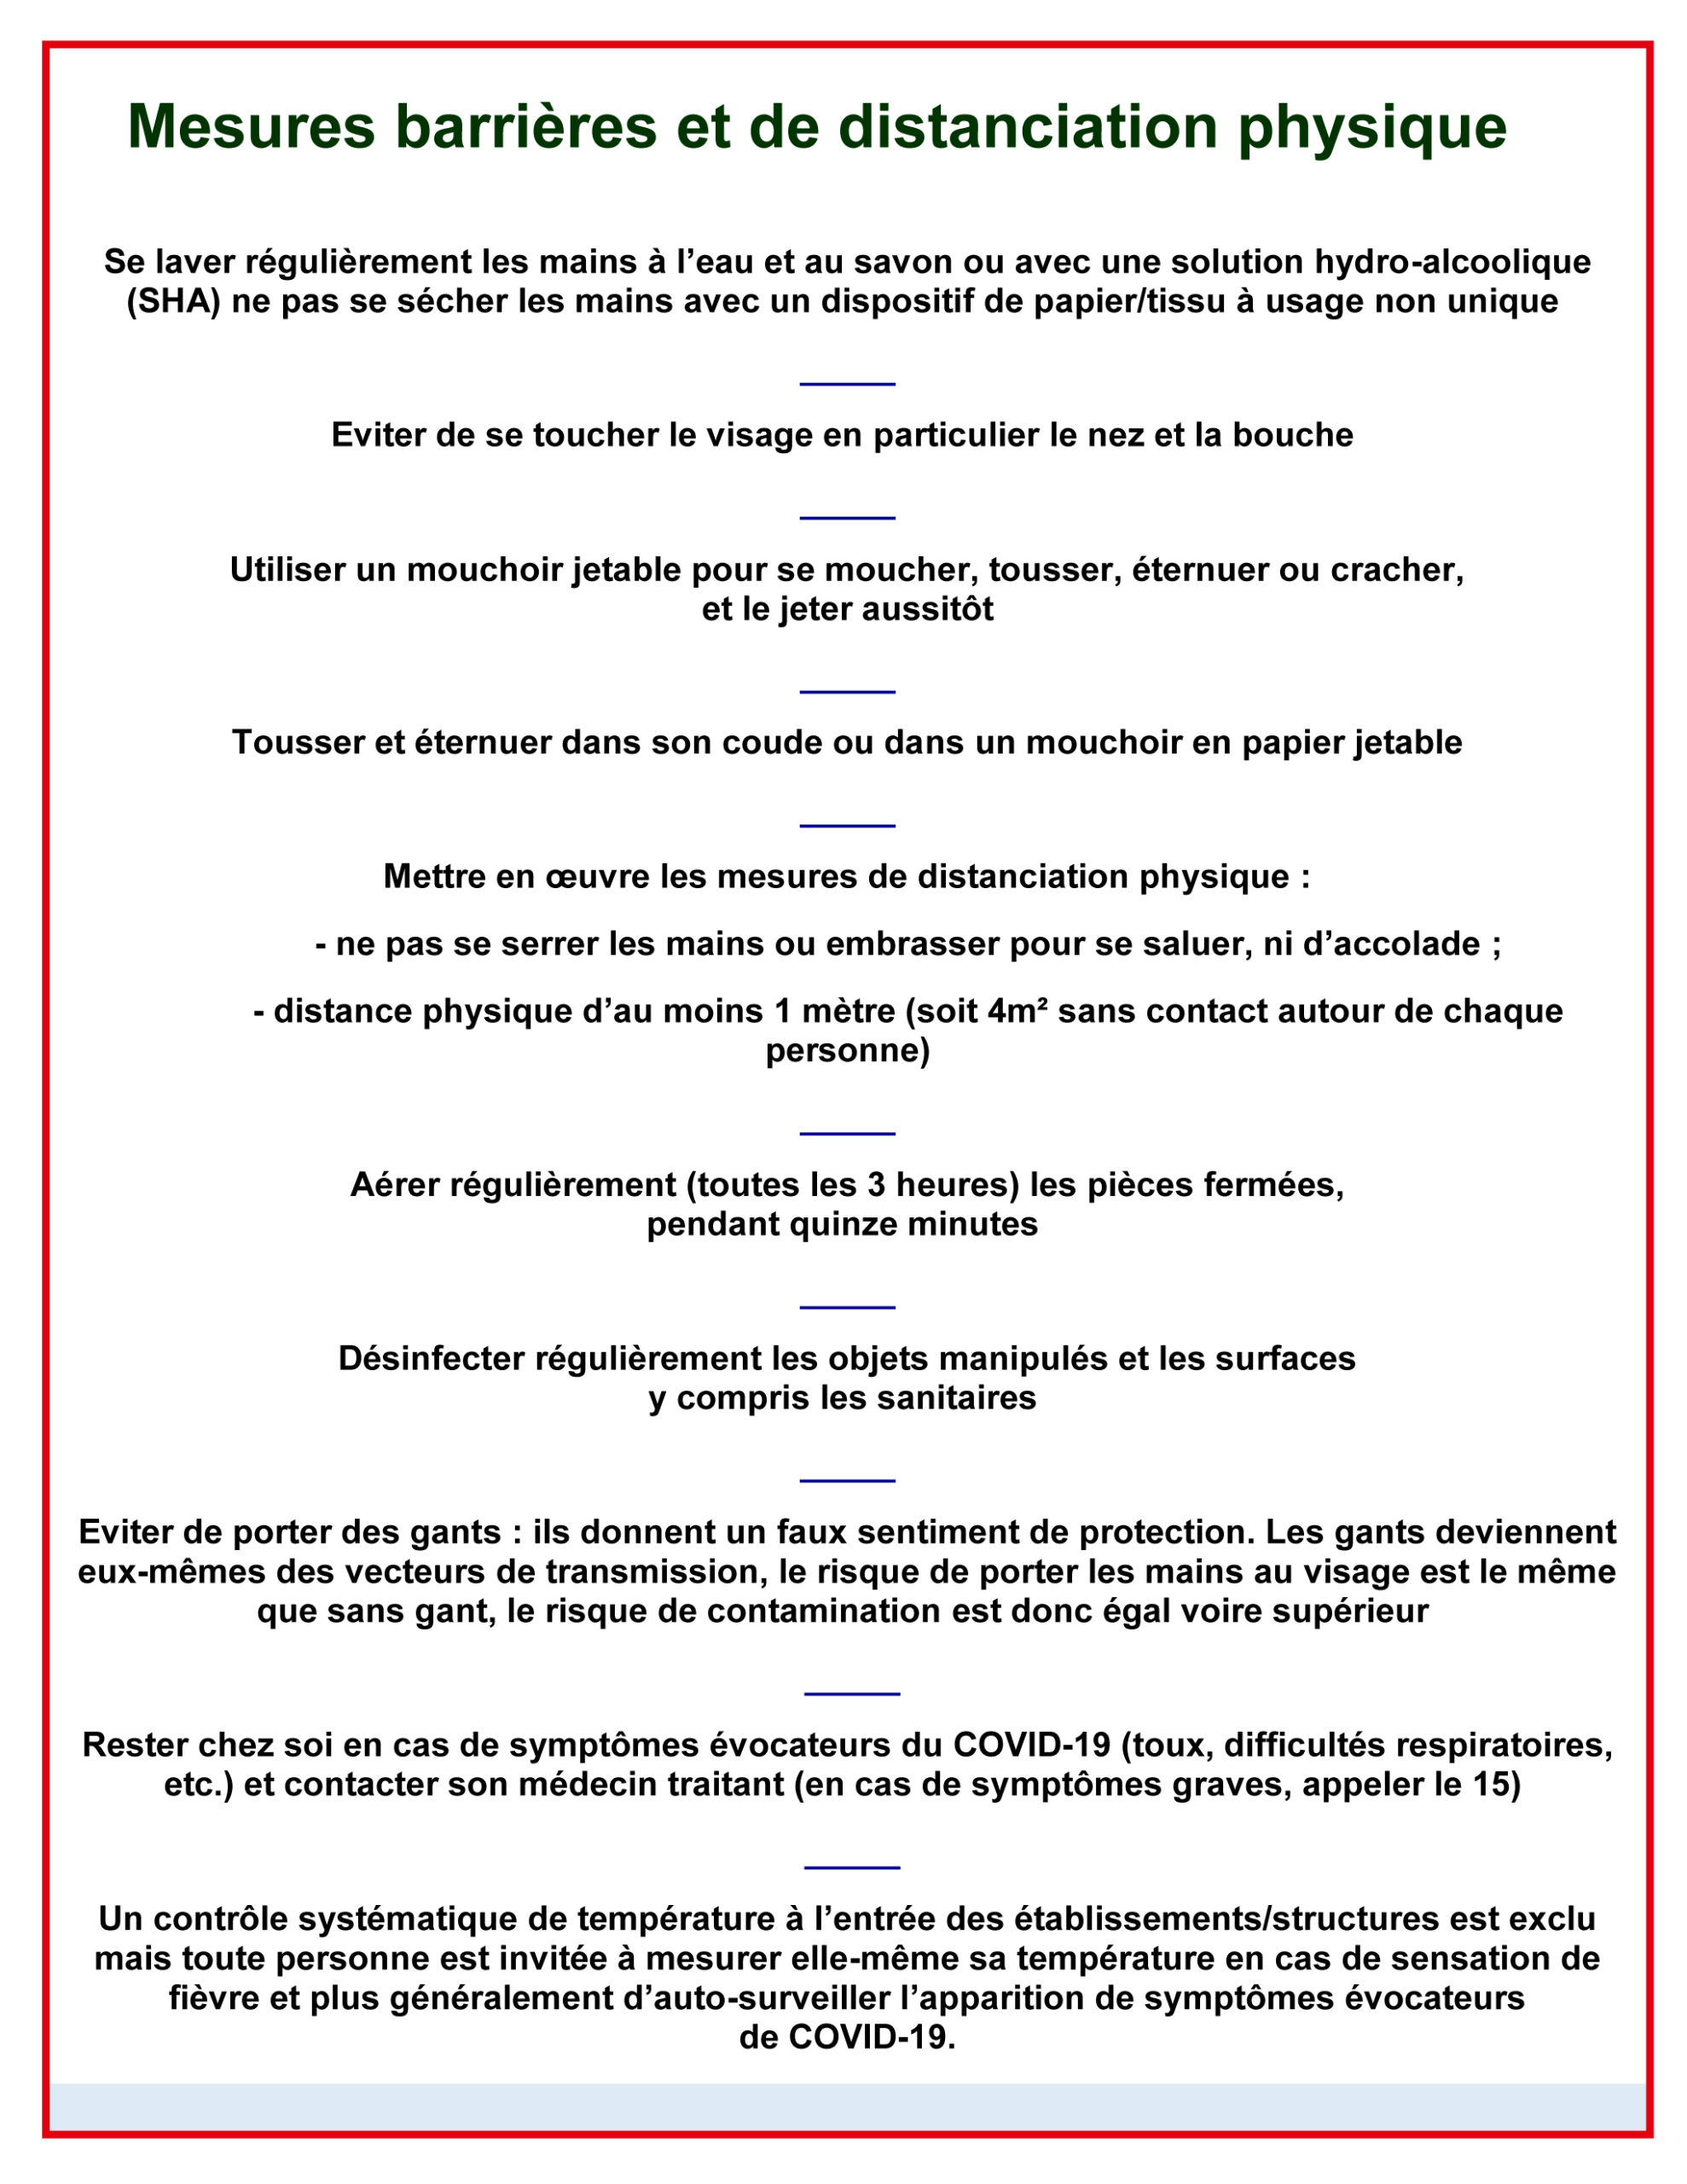 mesures_barrieres covid19